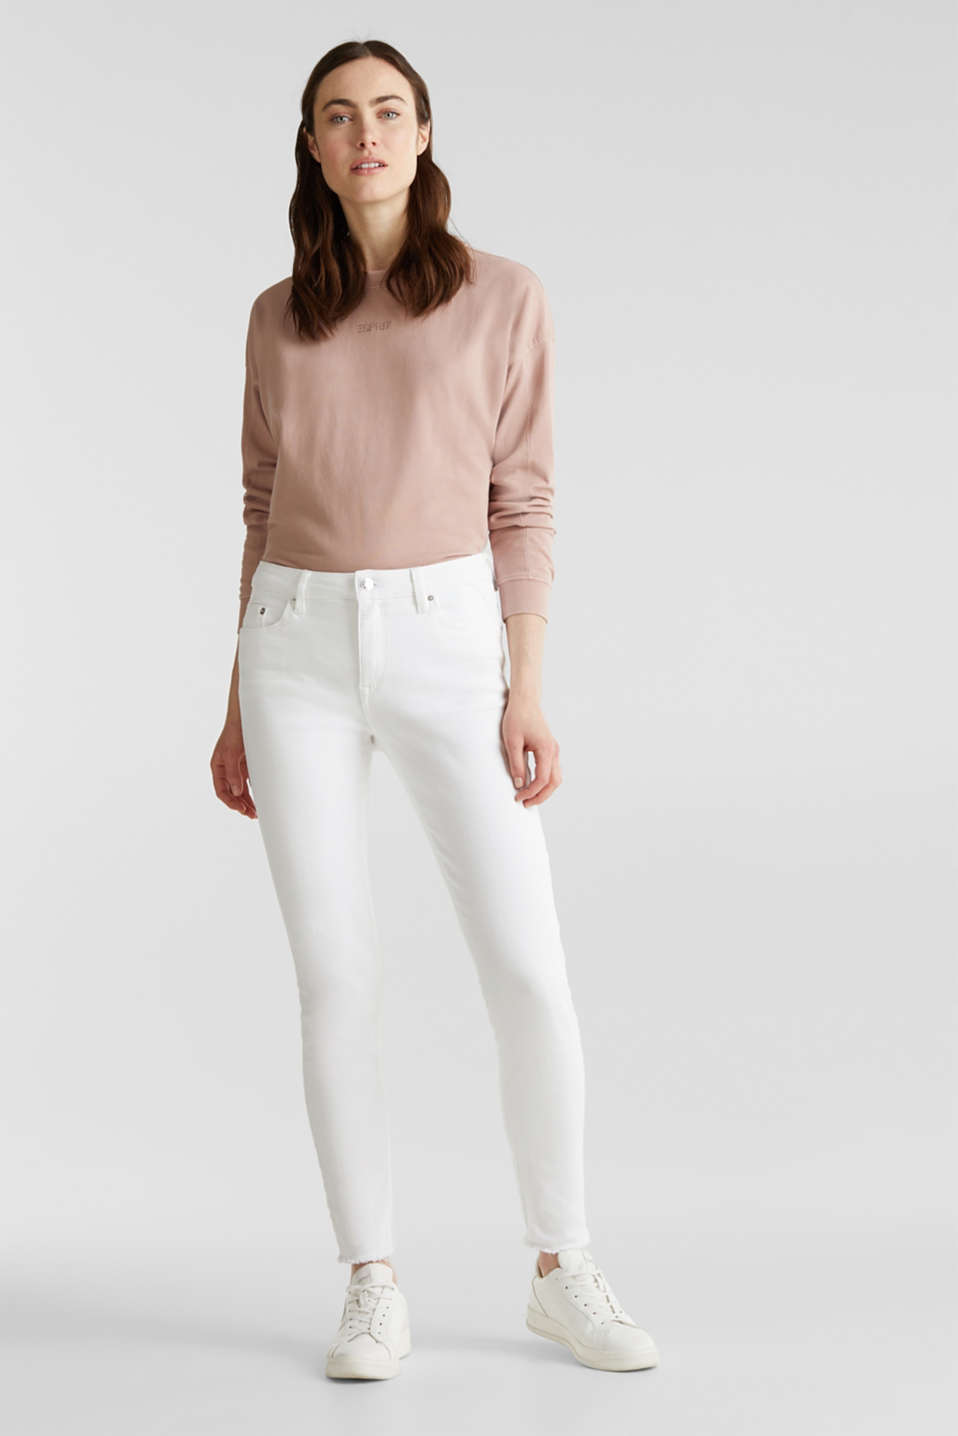 Esprit - Ankle-length jeans with frayed leg openings